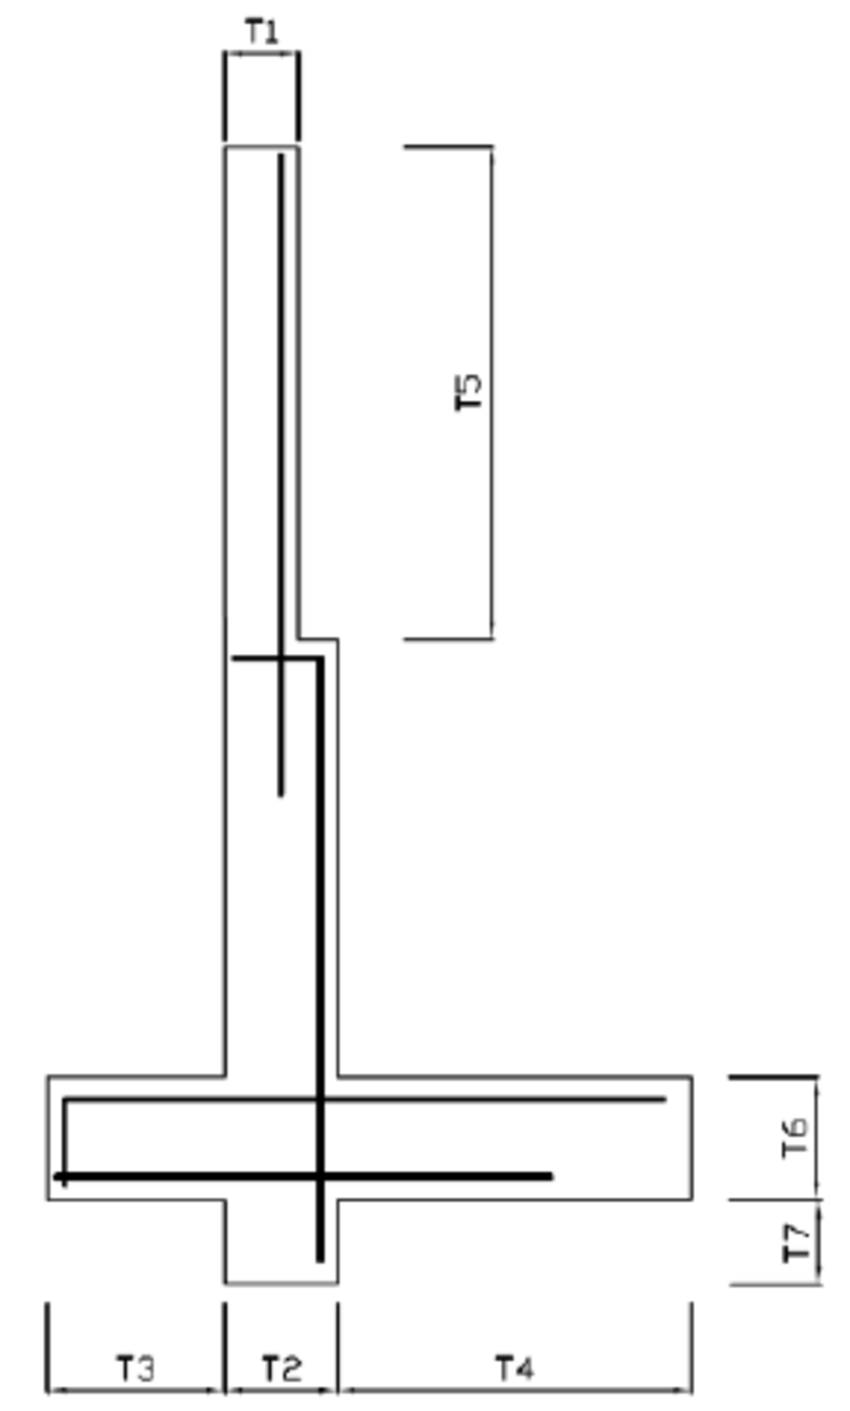 hight resolution of schematic view of the concrete retaining wall